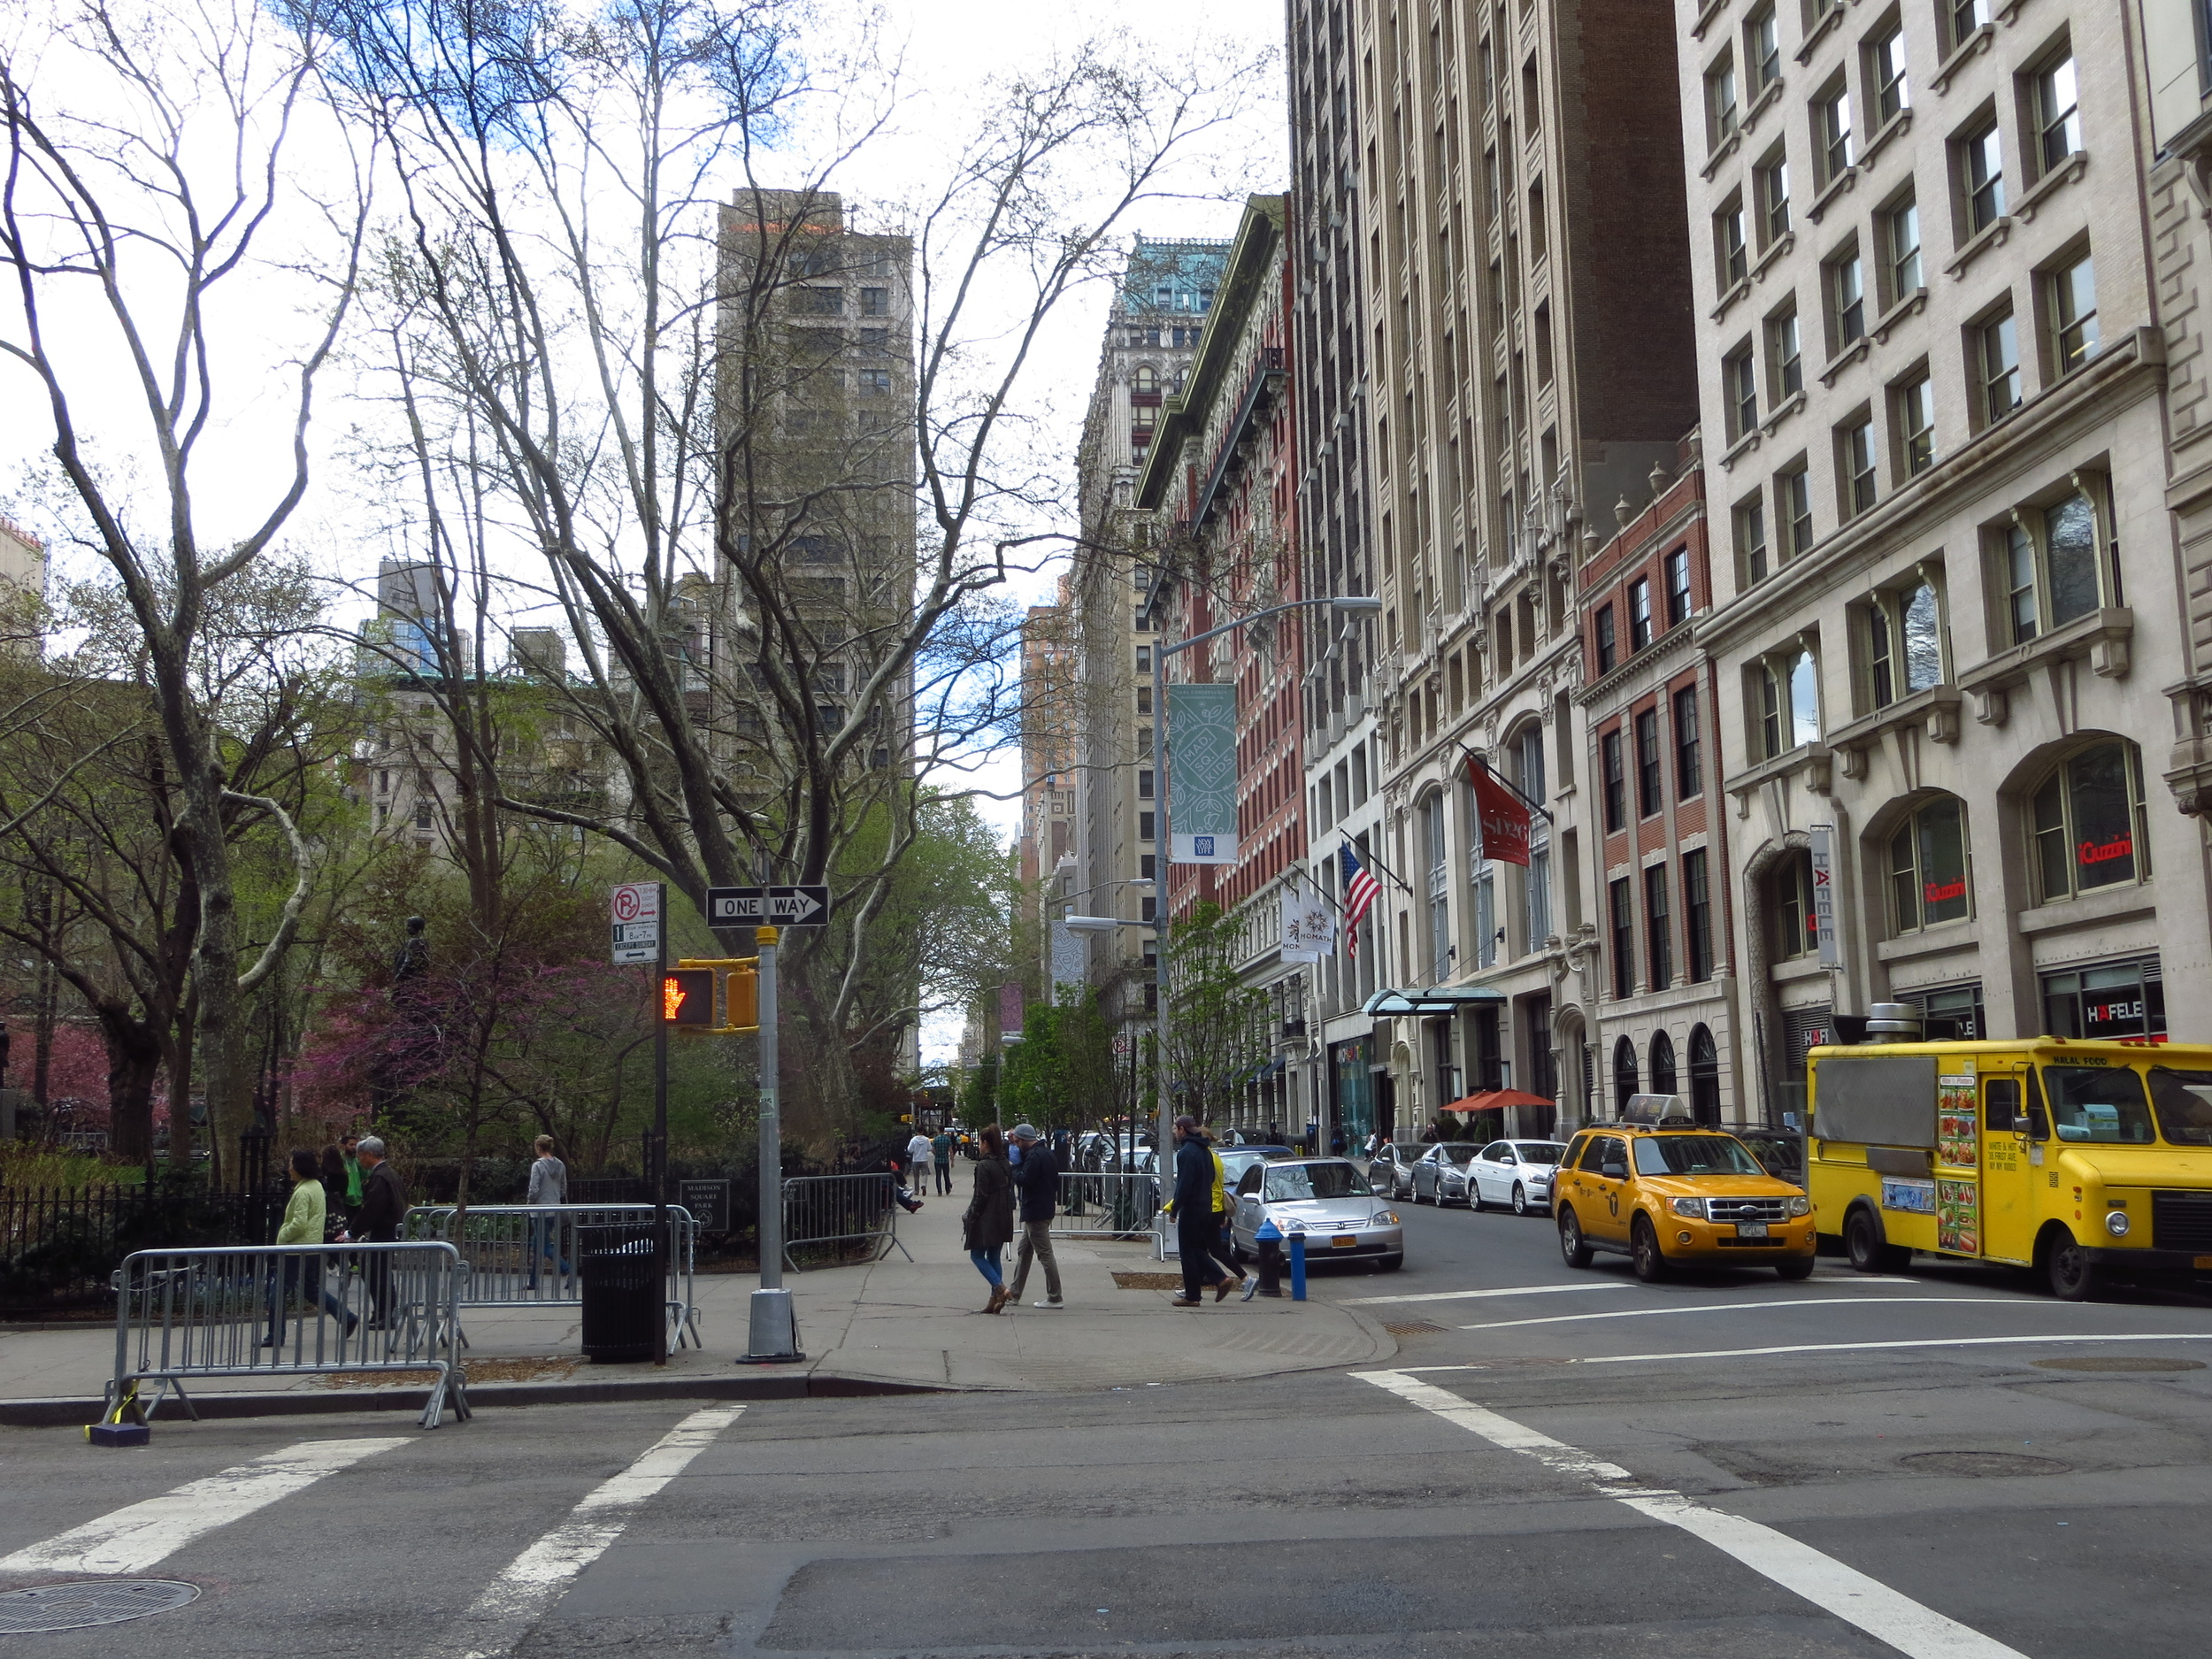 North end of Madison Square Park